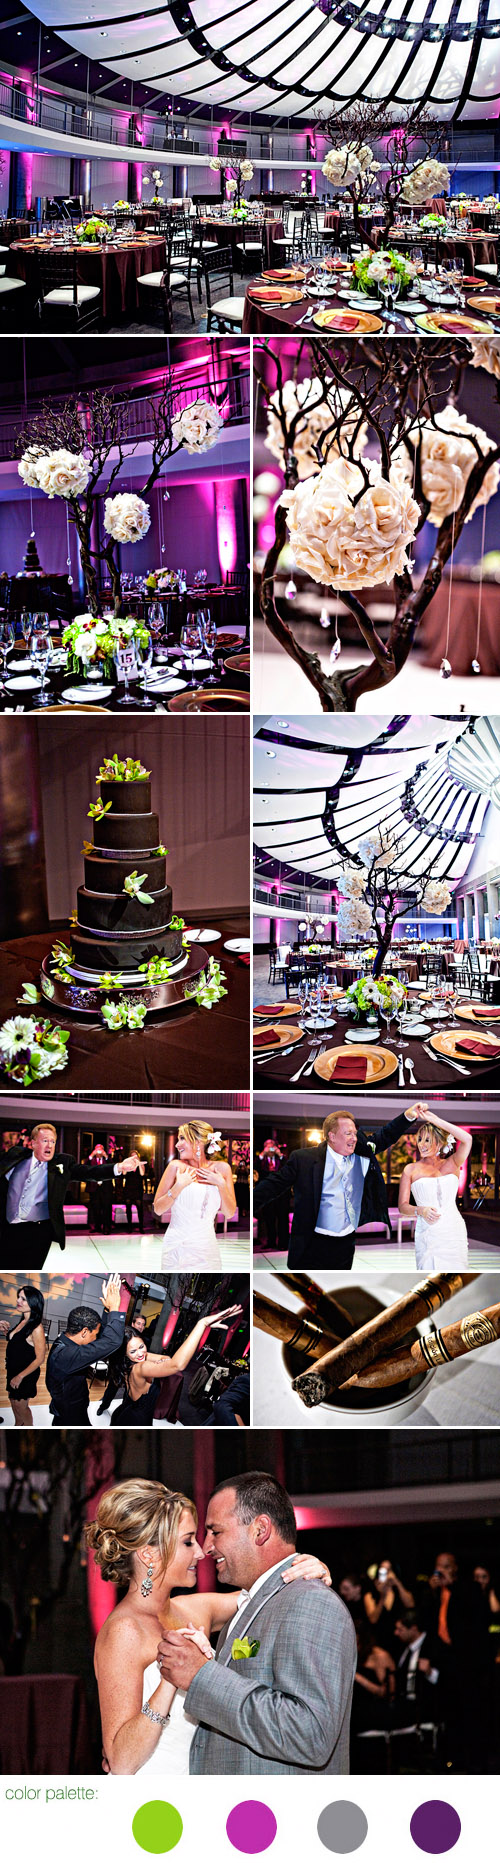 jewel tone wedding color palette real wedding reception, images by Joy Marie Photography